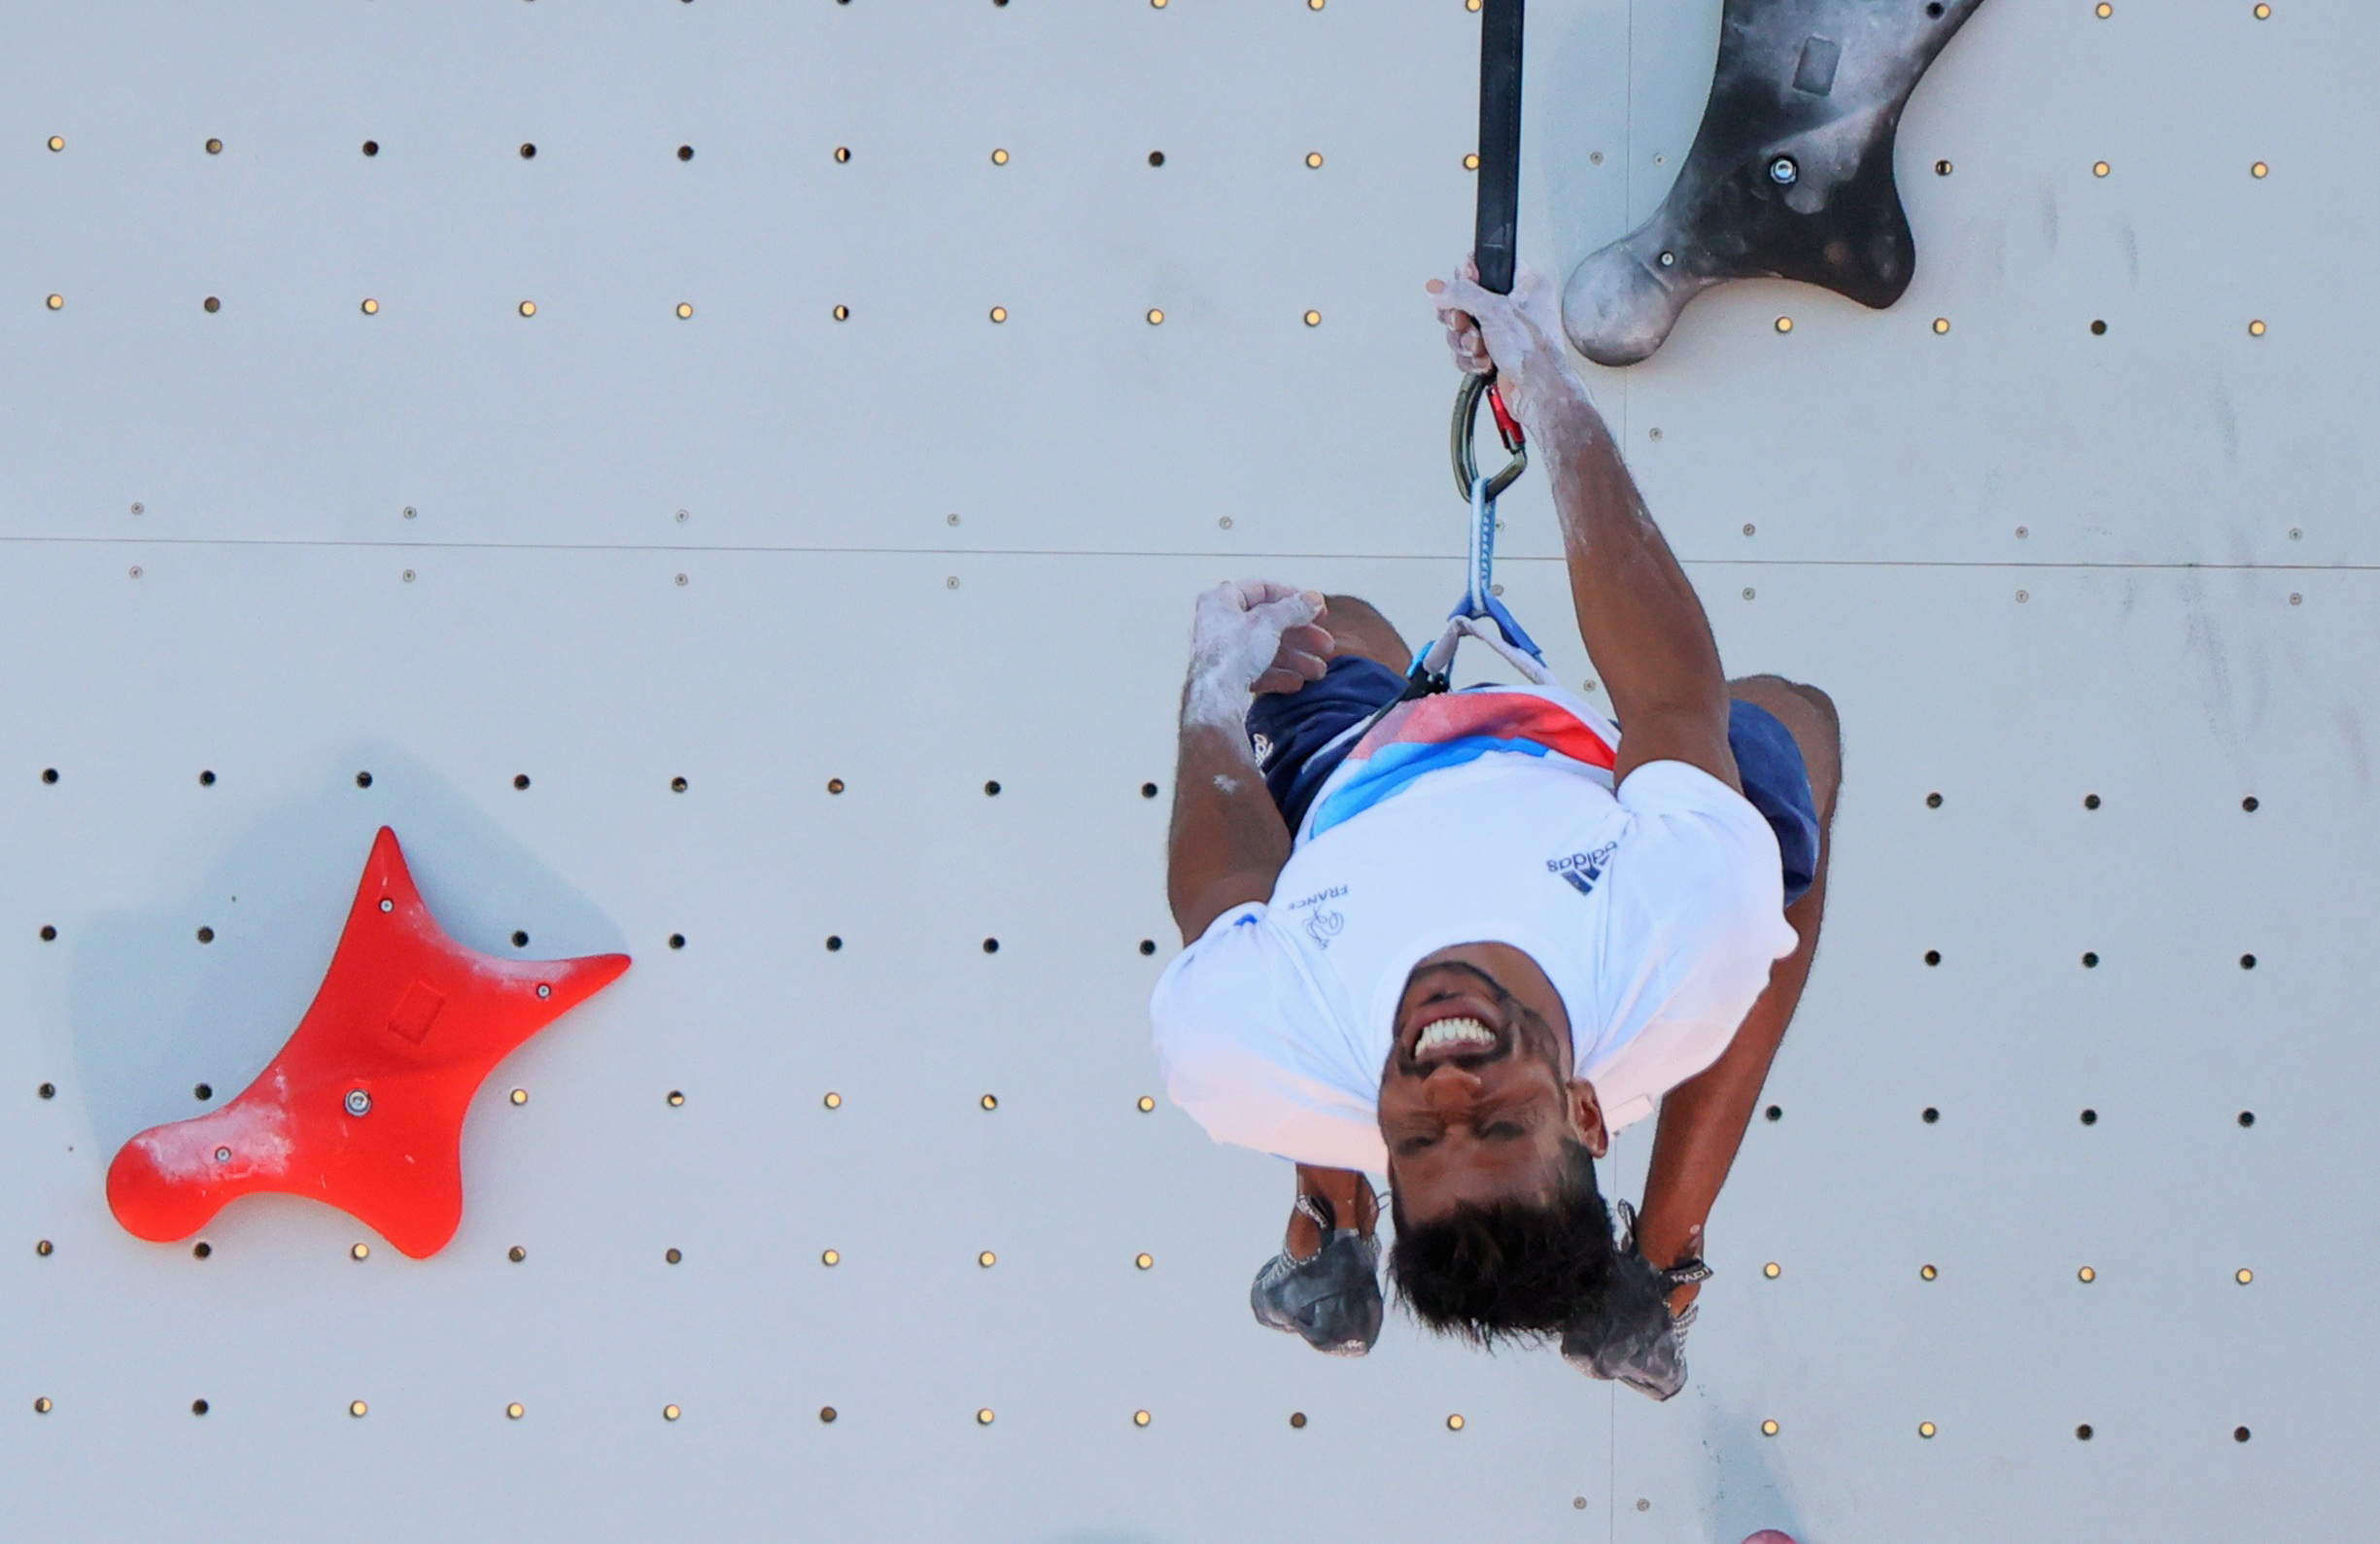 Tokyo 2020 Olympics - Sport Climbing - Men's Combined - Qualification - Aomi Urban Sports Park - Tokyo, Japan - August 3, 2021. Bassa Mawem of France reacts after competing REUTERS/Maxim Shemetov